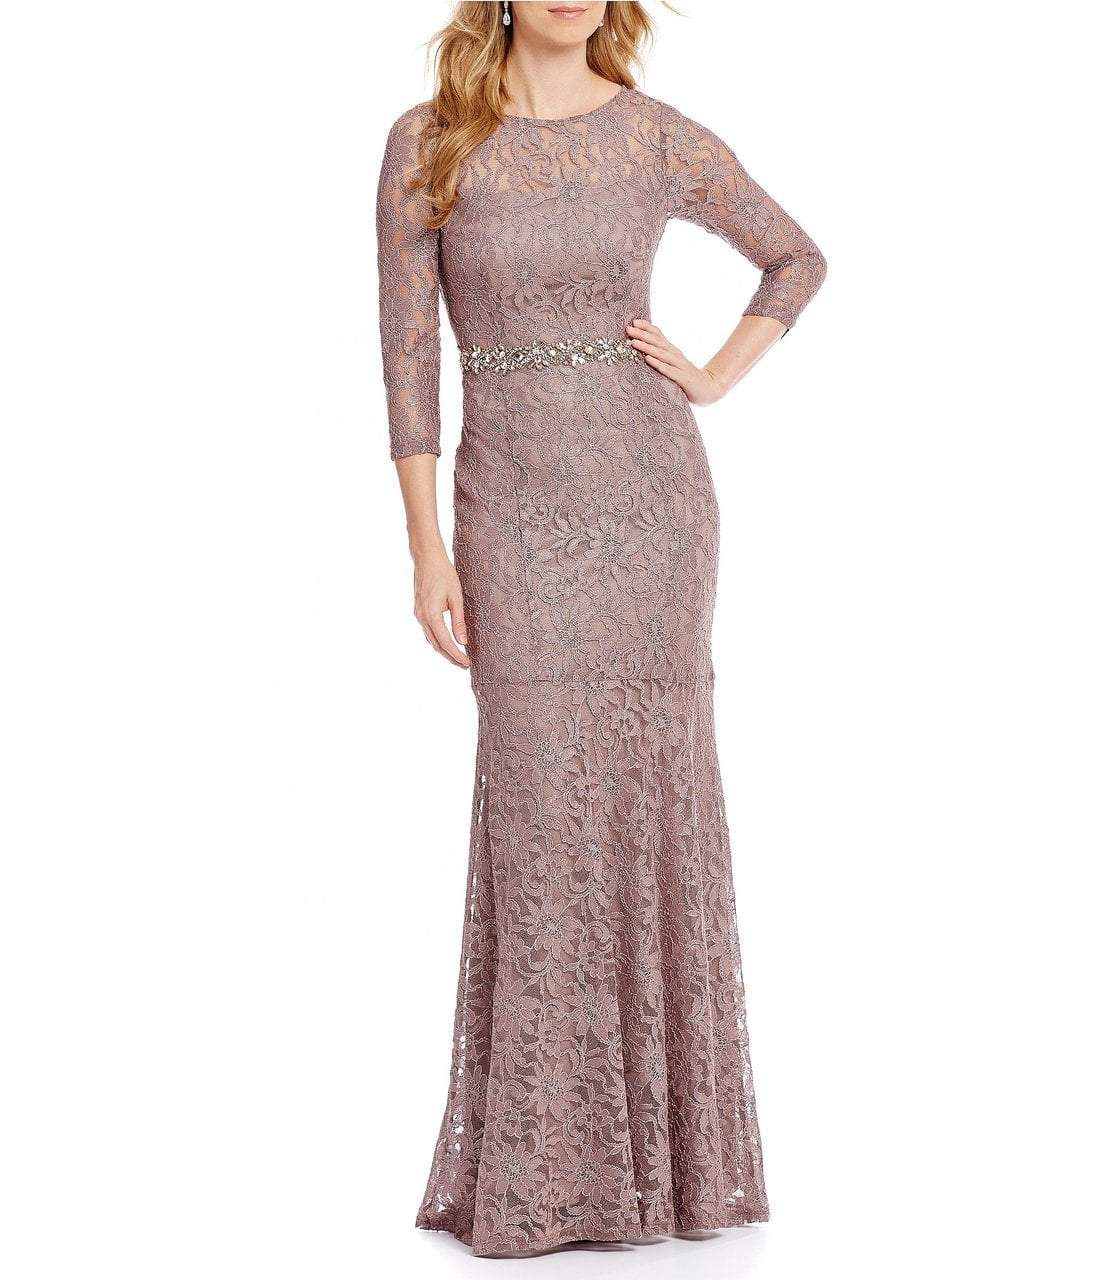 Decode 1.8 - 184138 Long Sleeves Lace Evening Gown in Gray